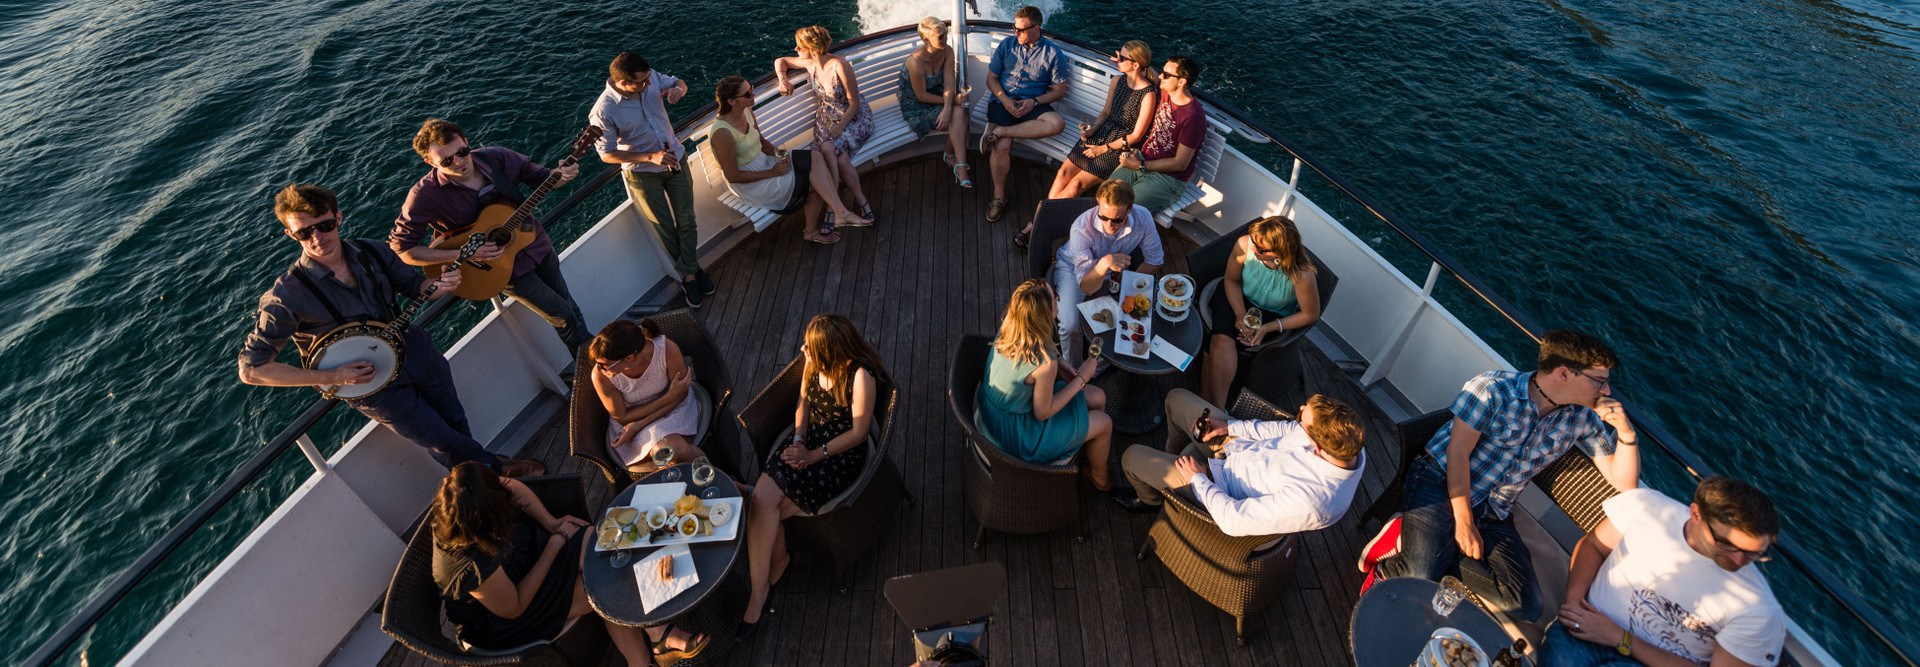 Open-air company aperitif on Lake Lucerne at summer.